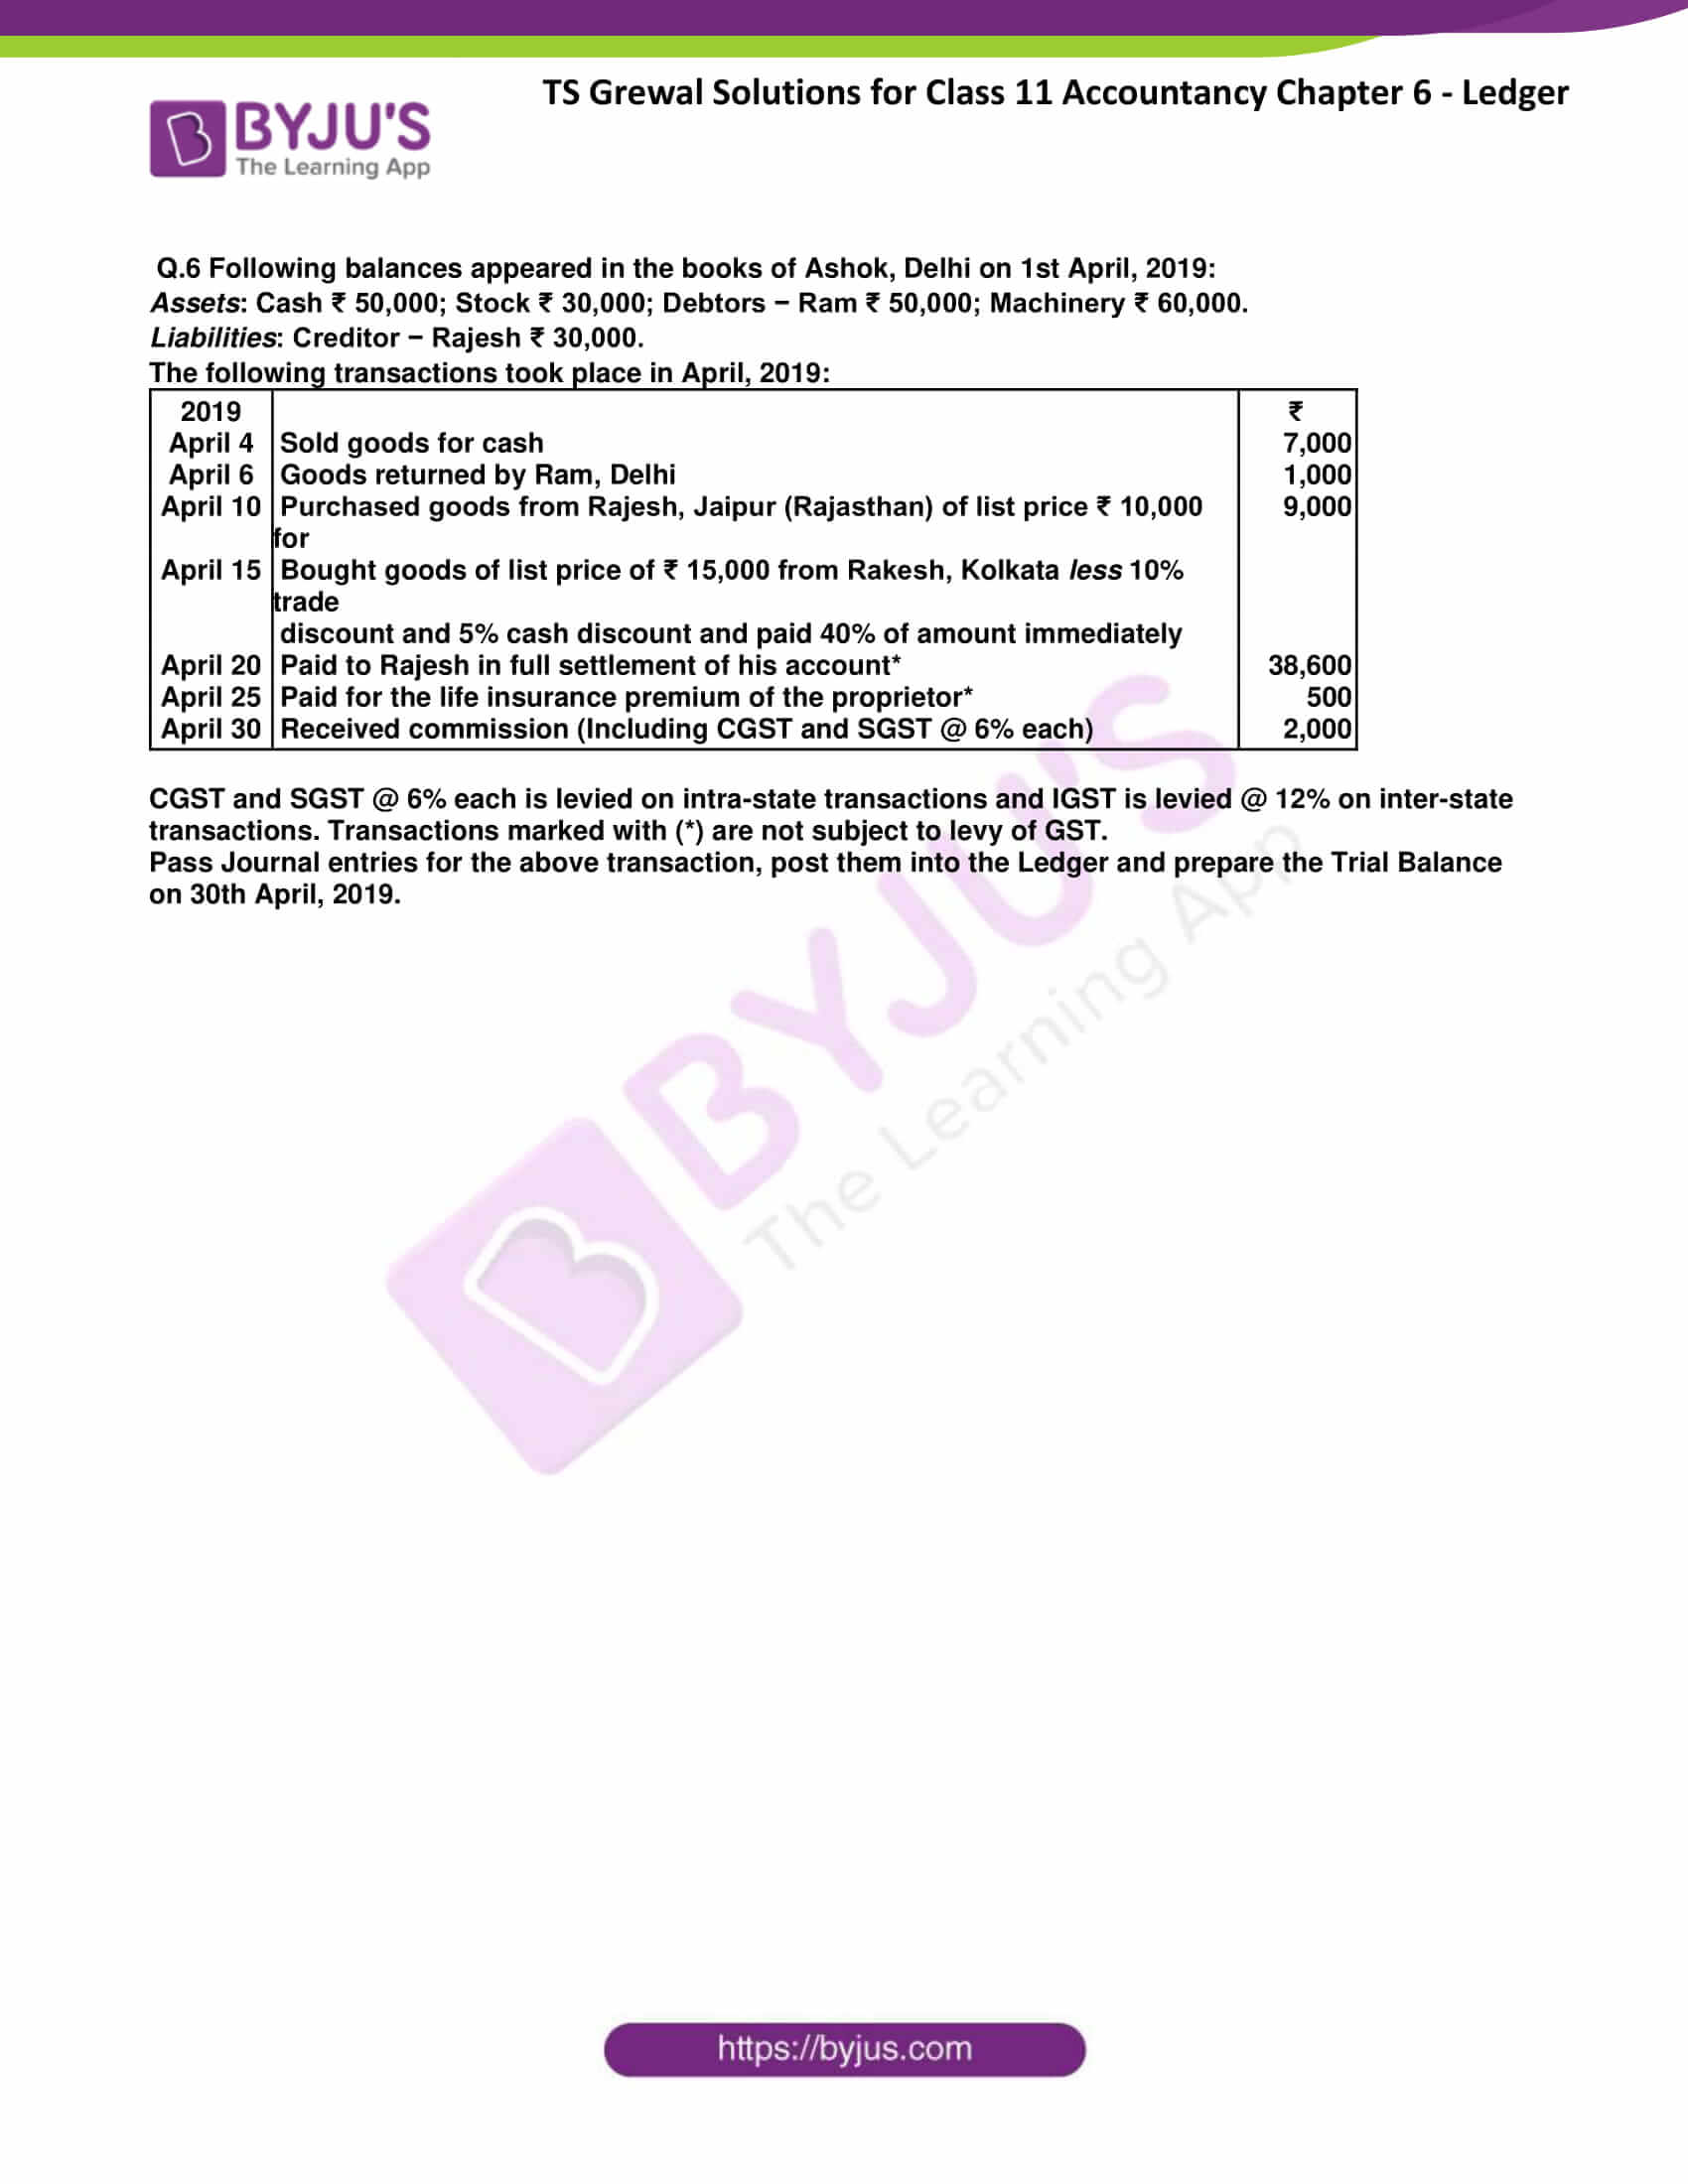 ts grewal class 11 accountancy chapter 6 ledger 29